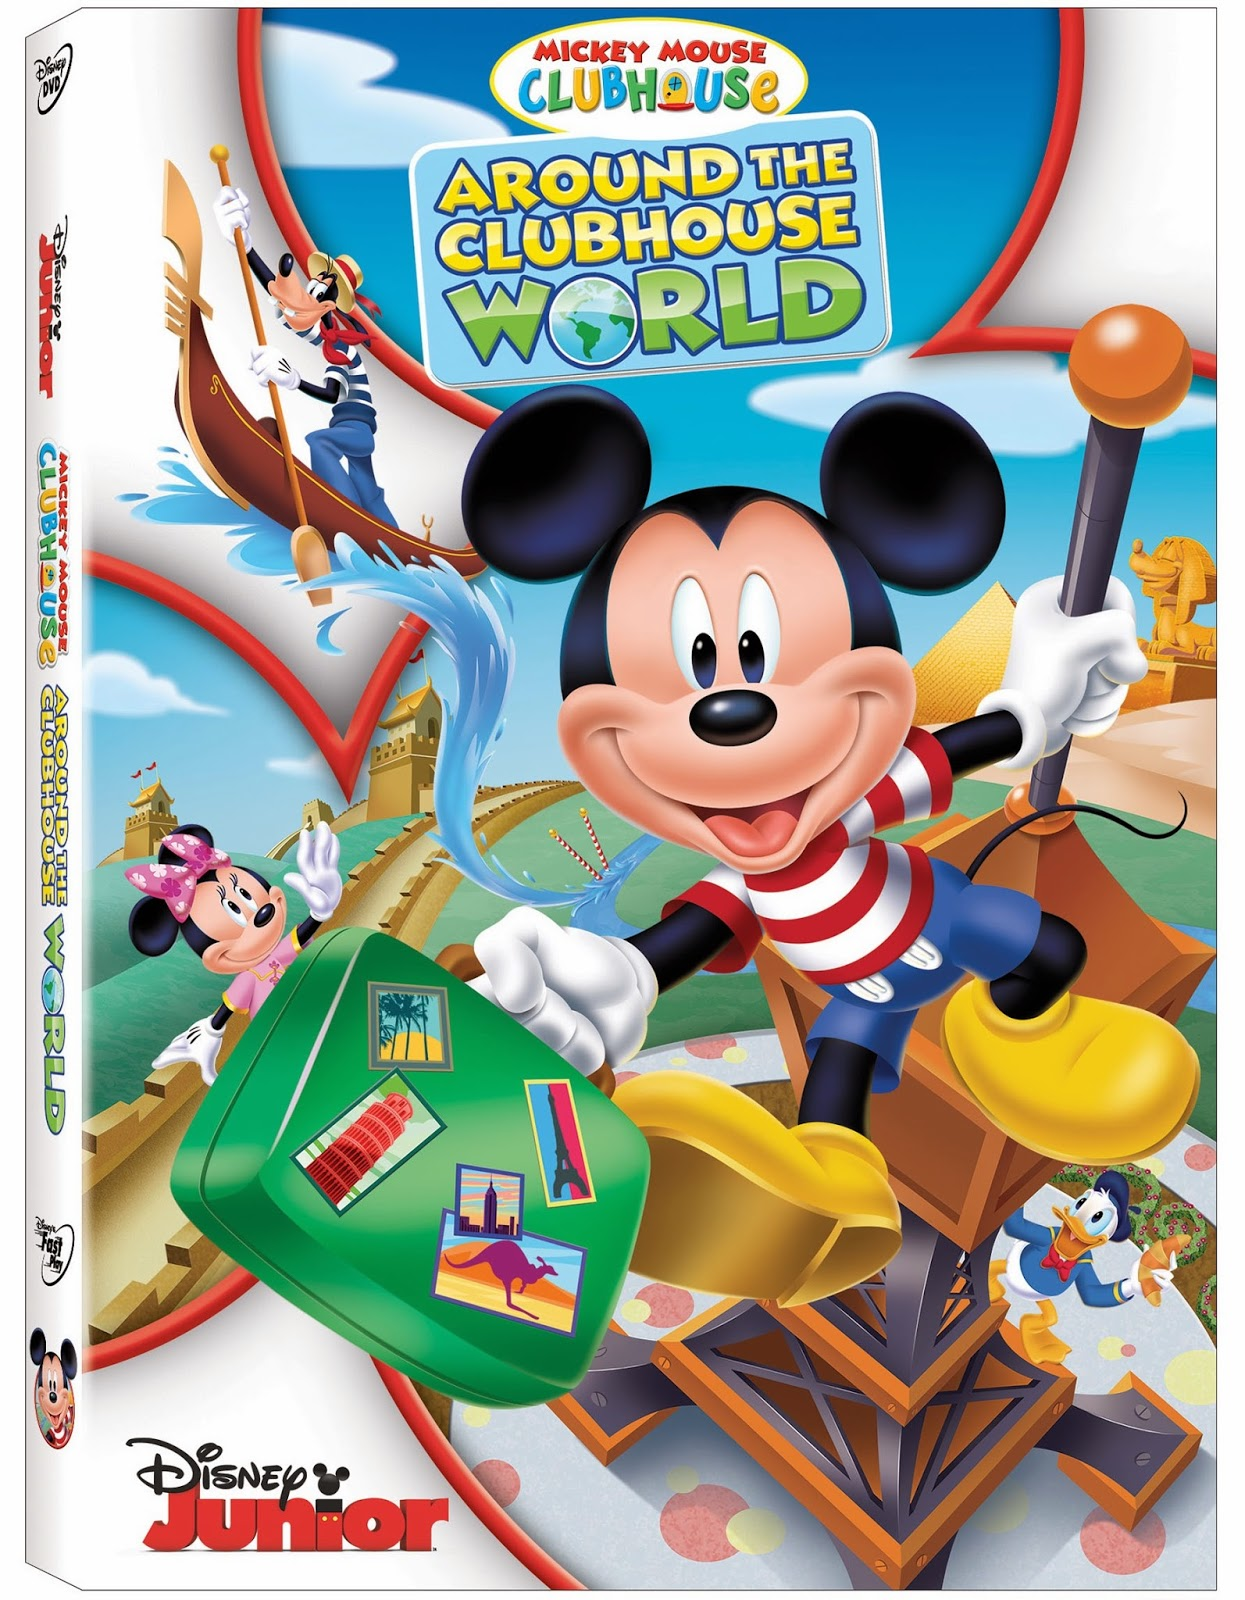 Mickey Mouse Clubhouse: Around the Clubhouse World on DVD ...